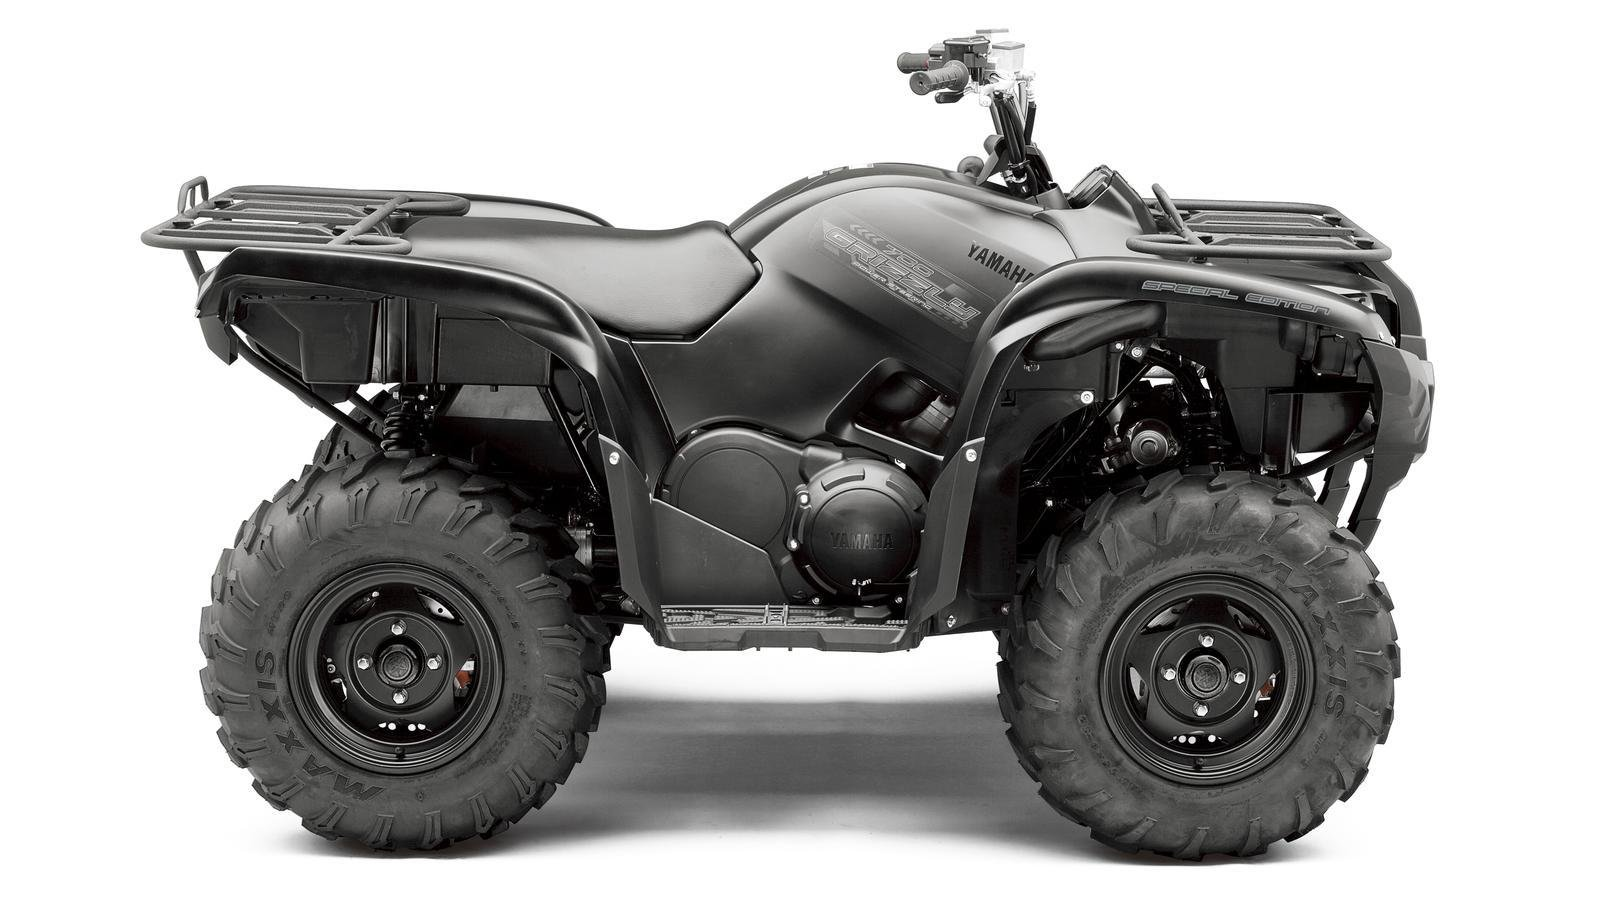 2013 yamaha grizzly 700 gallery for 2014 yamaha grizzly 700